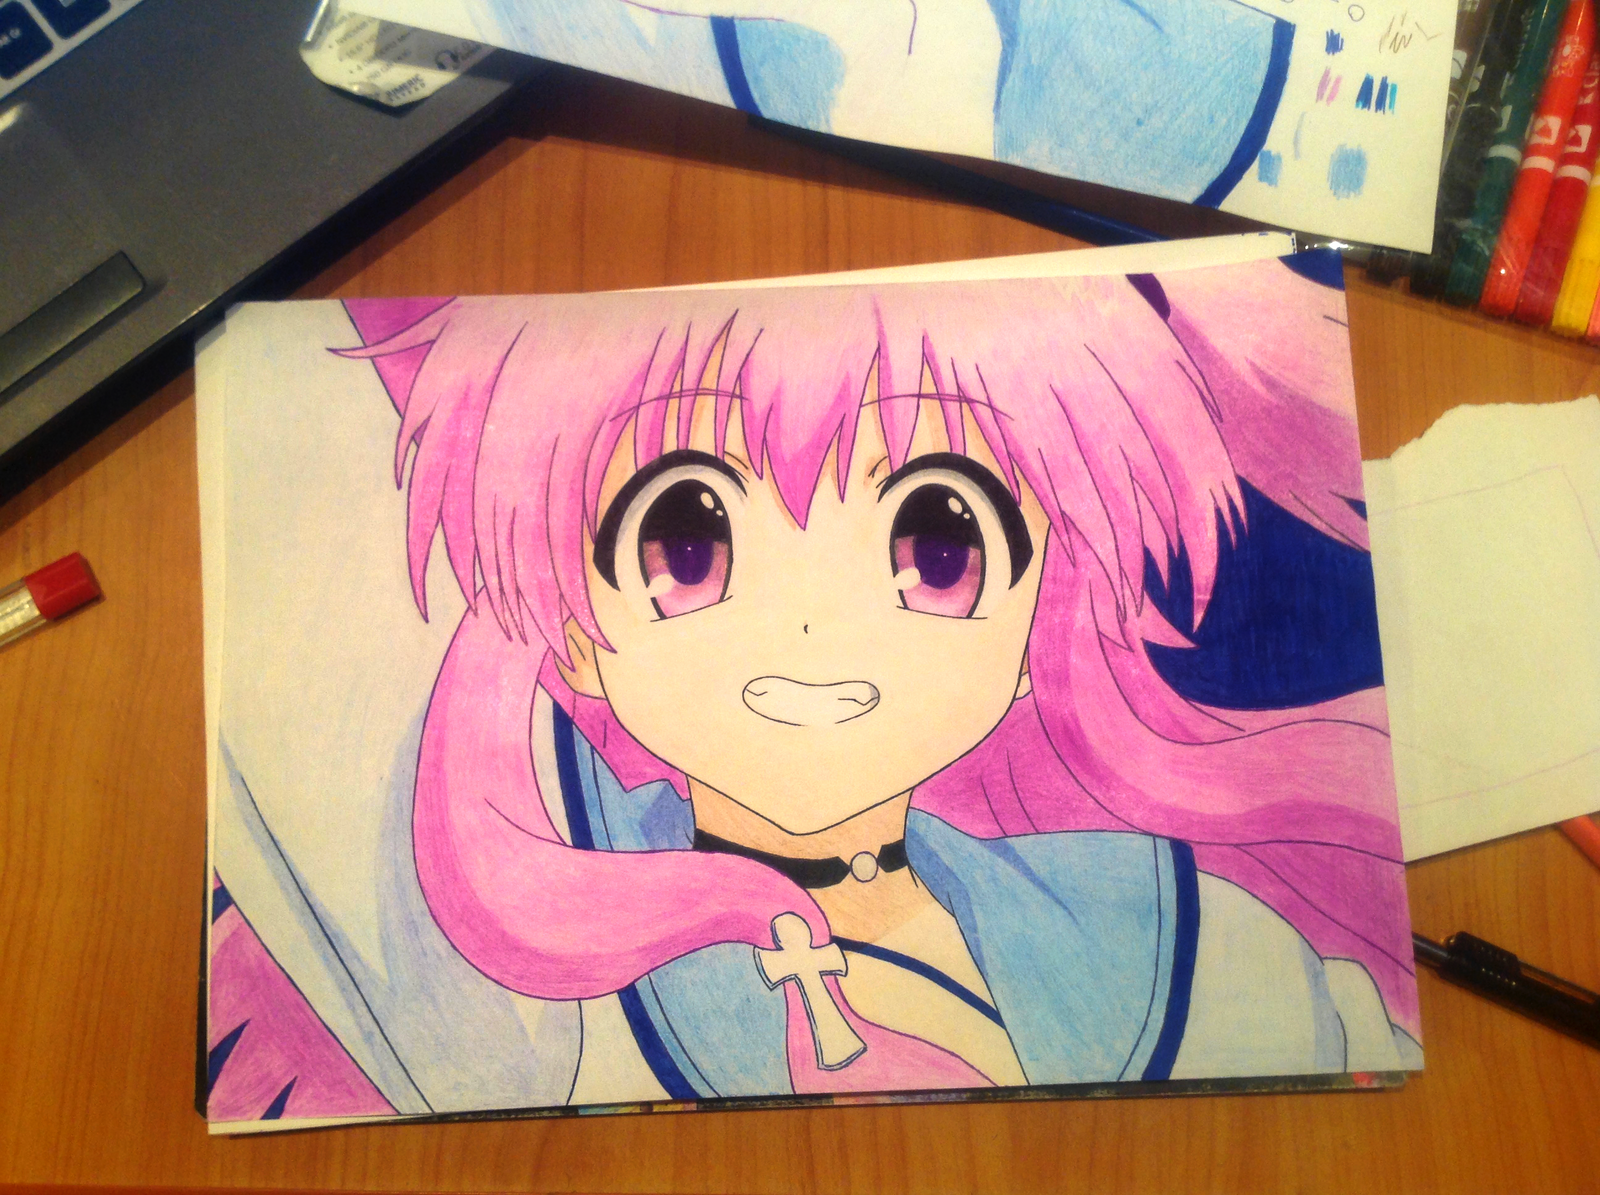 yui nyan color drawing by ds51 a on deviantart